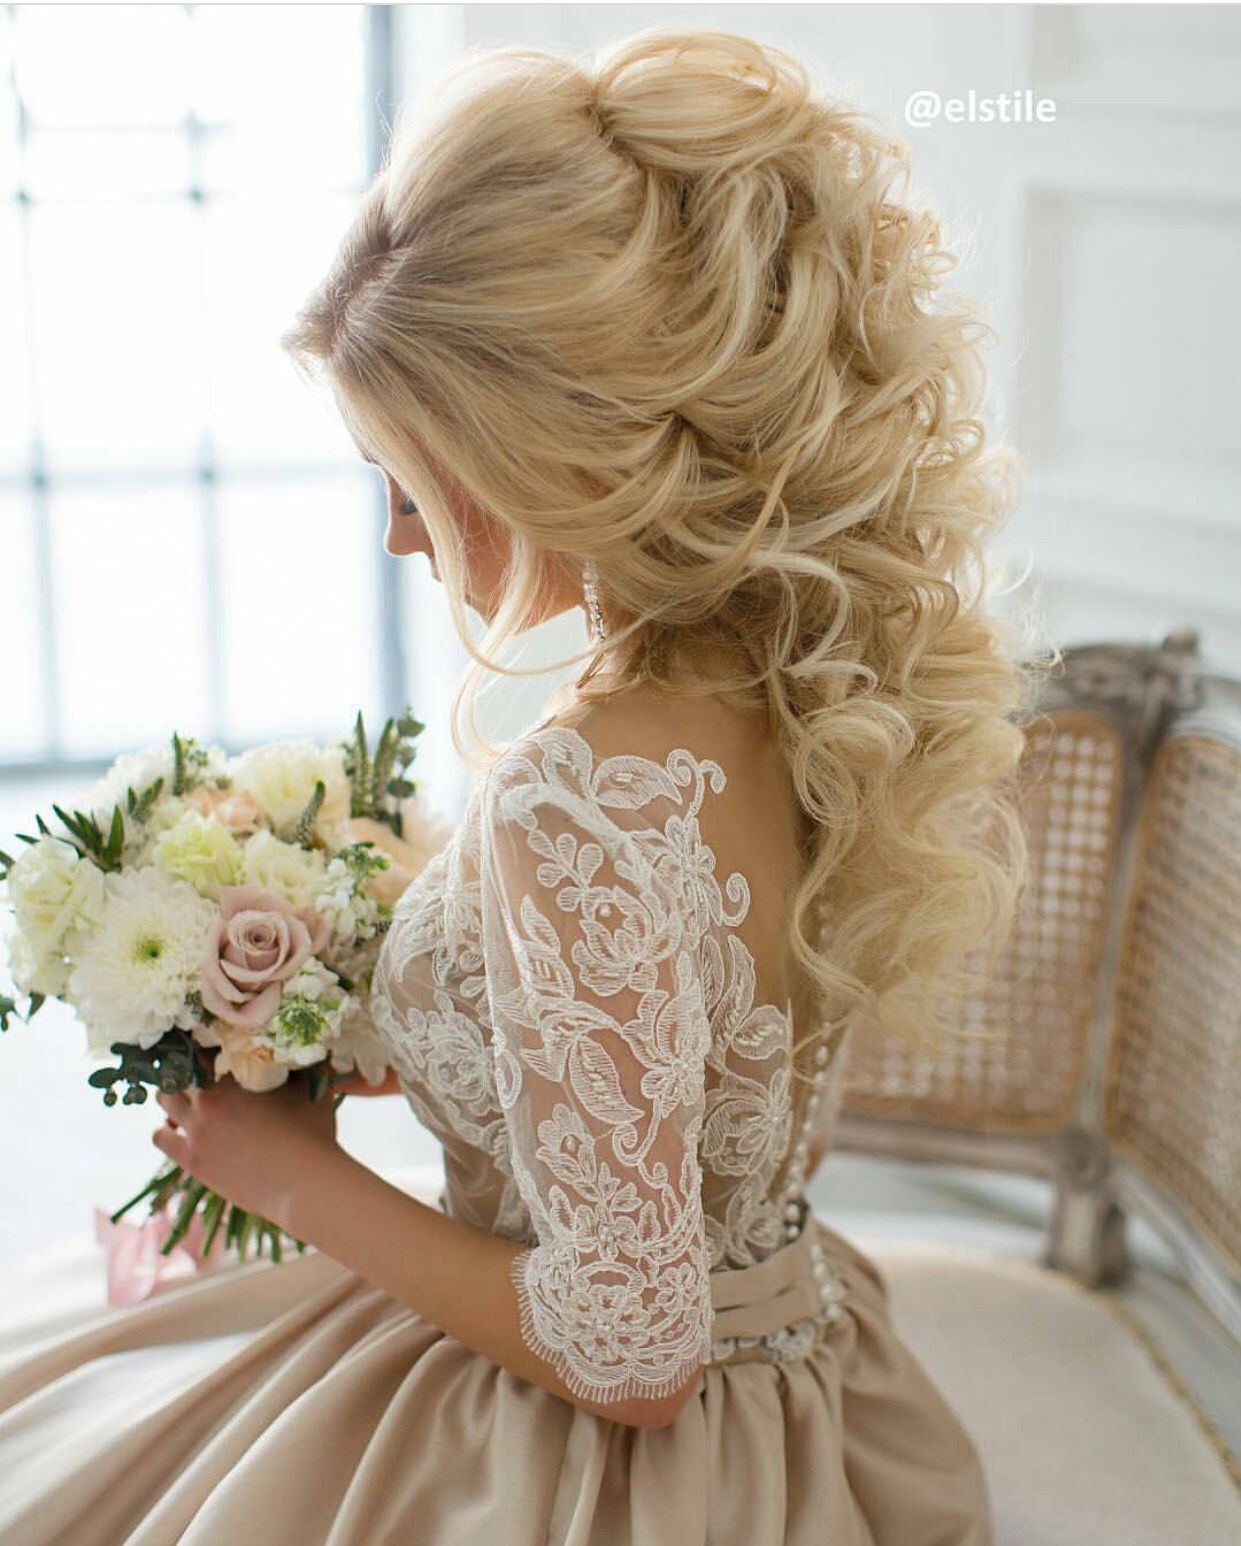 Most Popular Wedding Hairstyles: Most Beautiful Wedding Hair Ever!